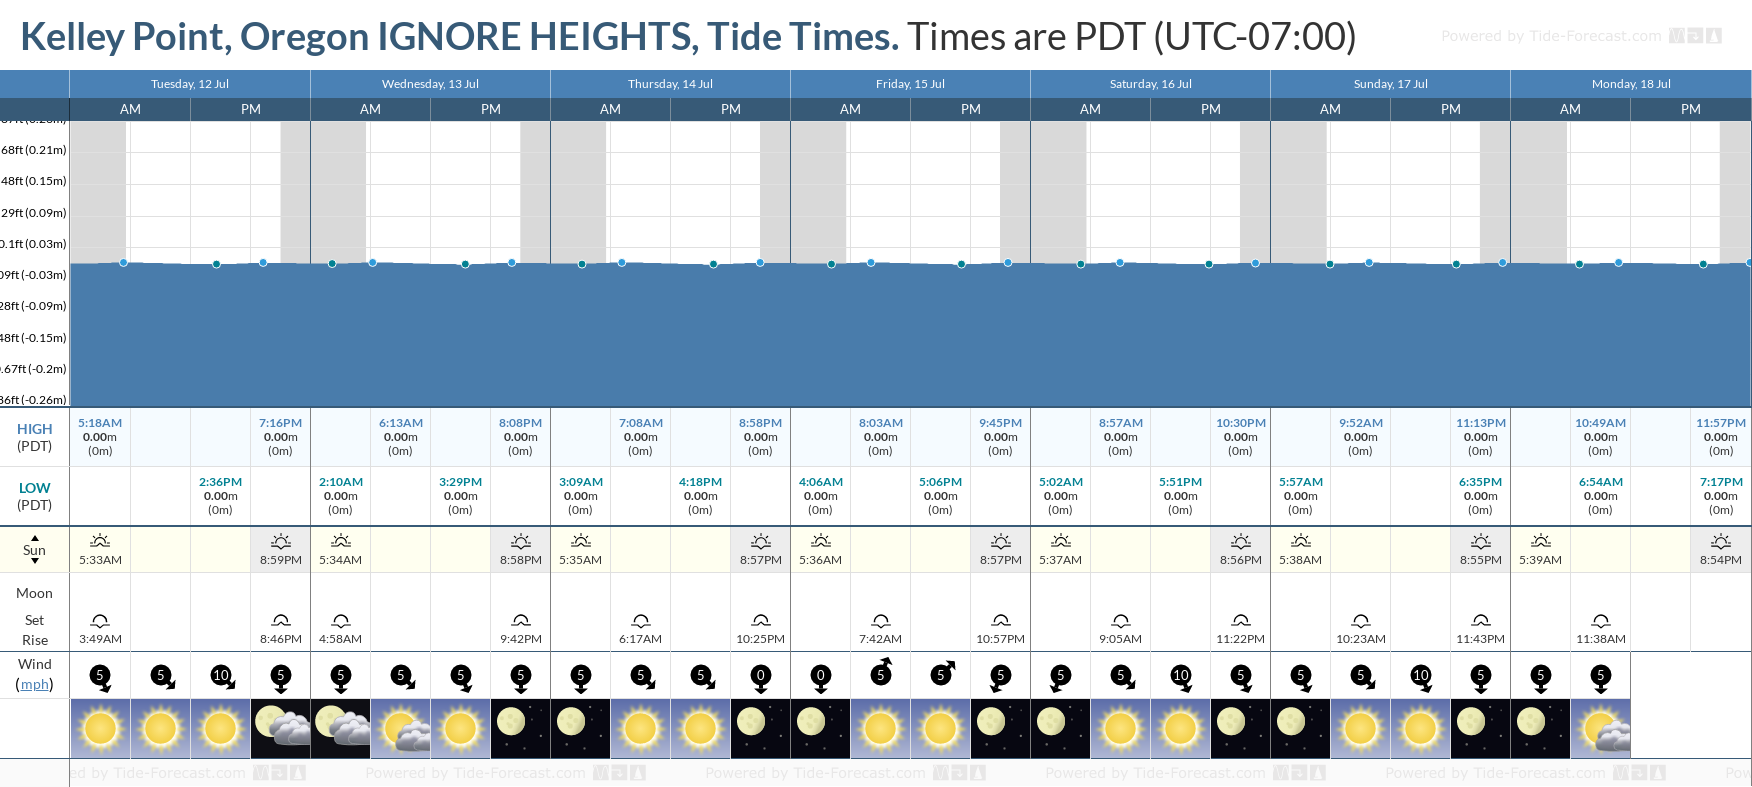 Kelley Point, Oregon IGNORE HEIGHTS Tide Chart including high and low tide tide times for the next 7 days